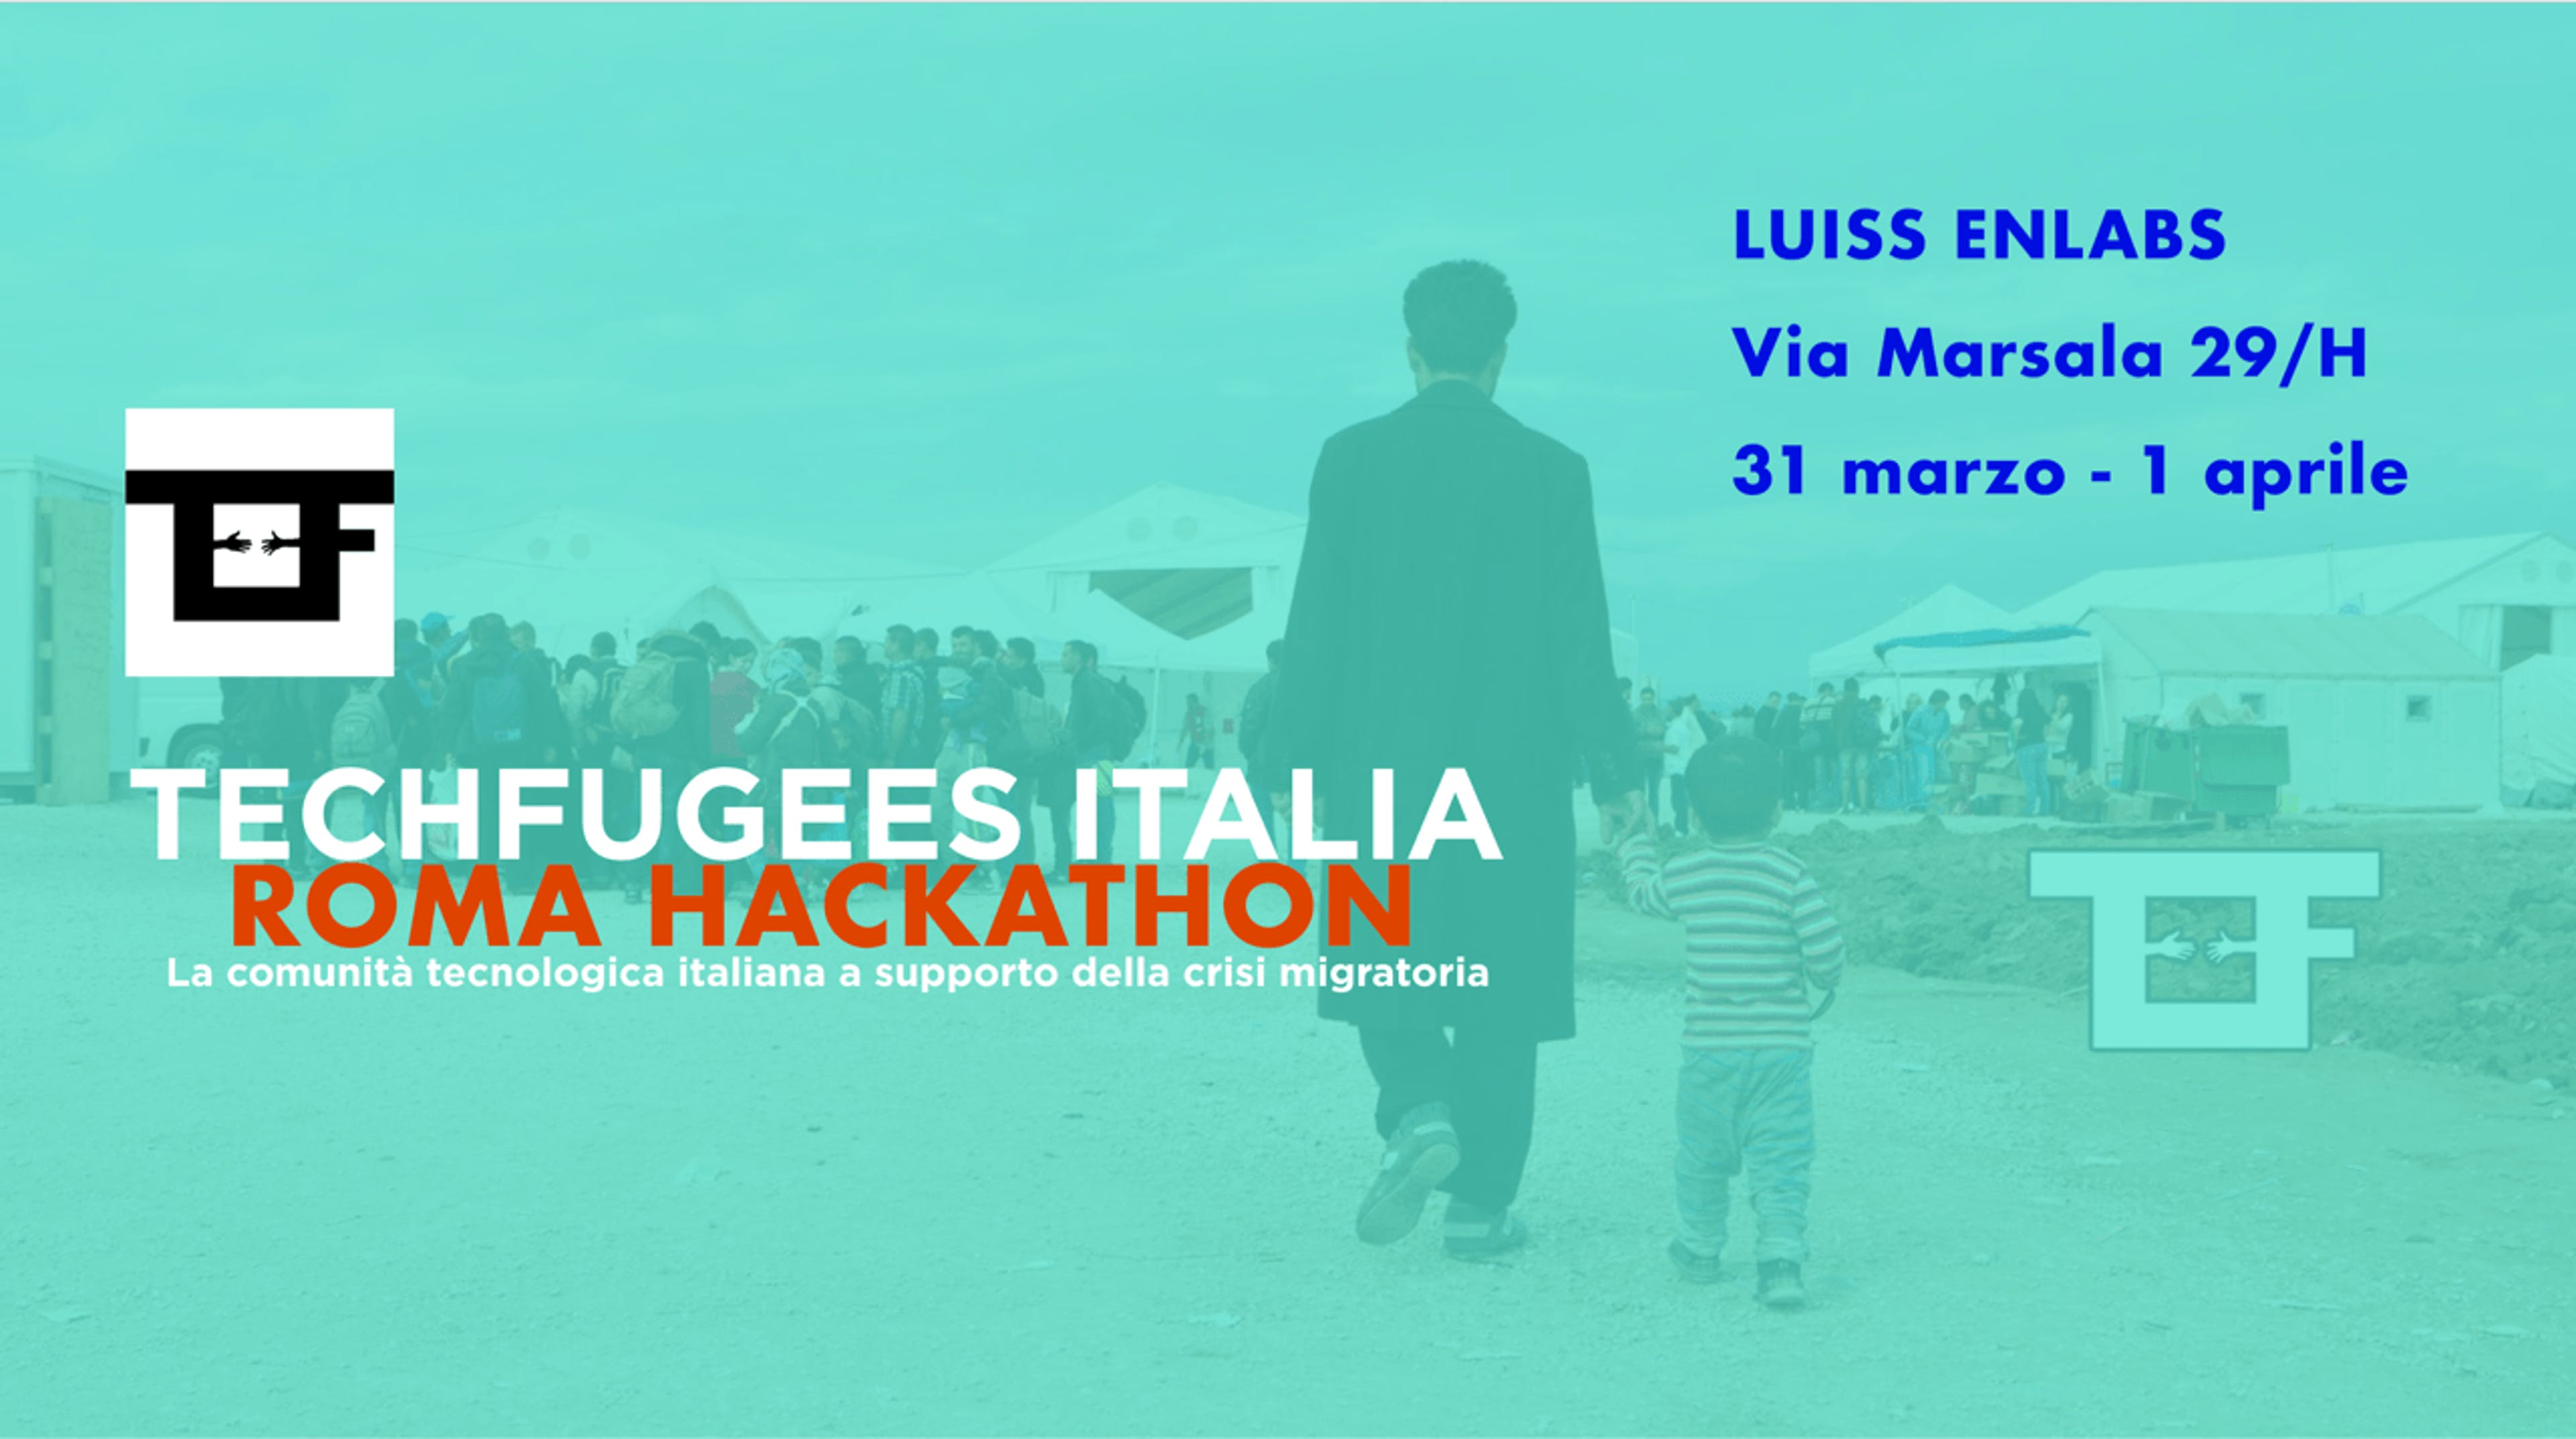 Techfugees Roma - Luiss Enlabs, 31 marzo/1° aprile 2017